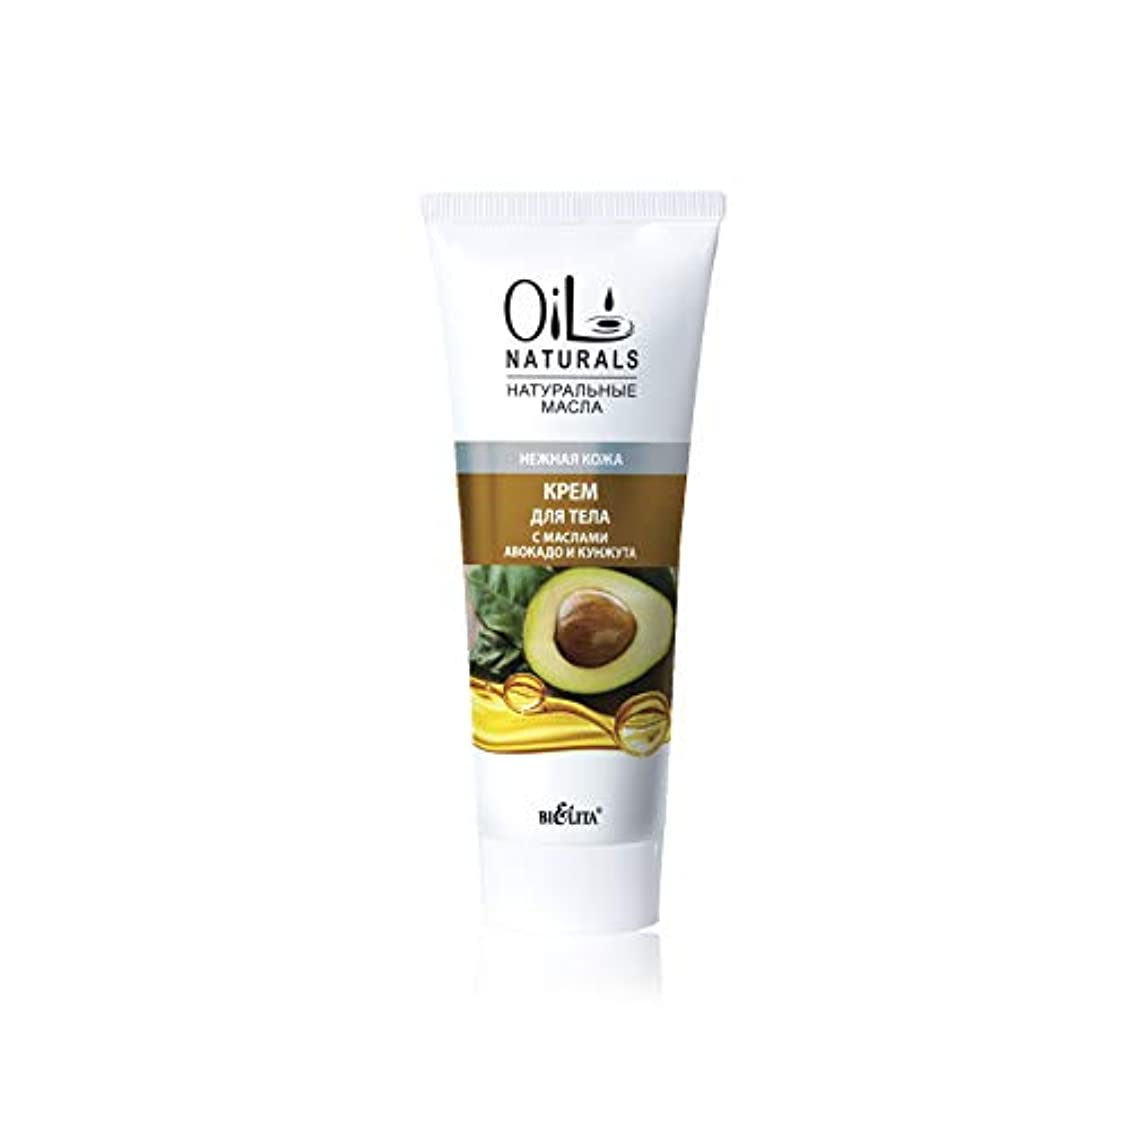 レンドどういたしまして暗殺Bielita & Vitex | Oil Naturals Line | Moisturizing Body Cream for Delicate Skin, 200 ml | Avocado Oil, Silk Proteins...